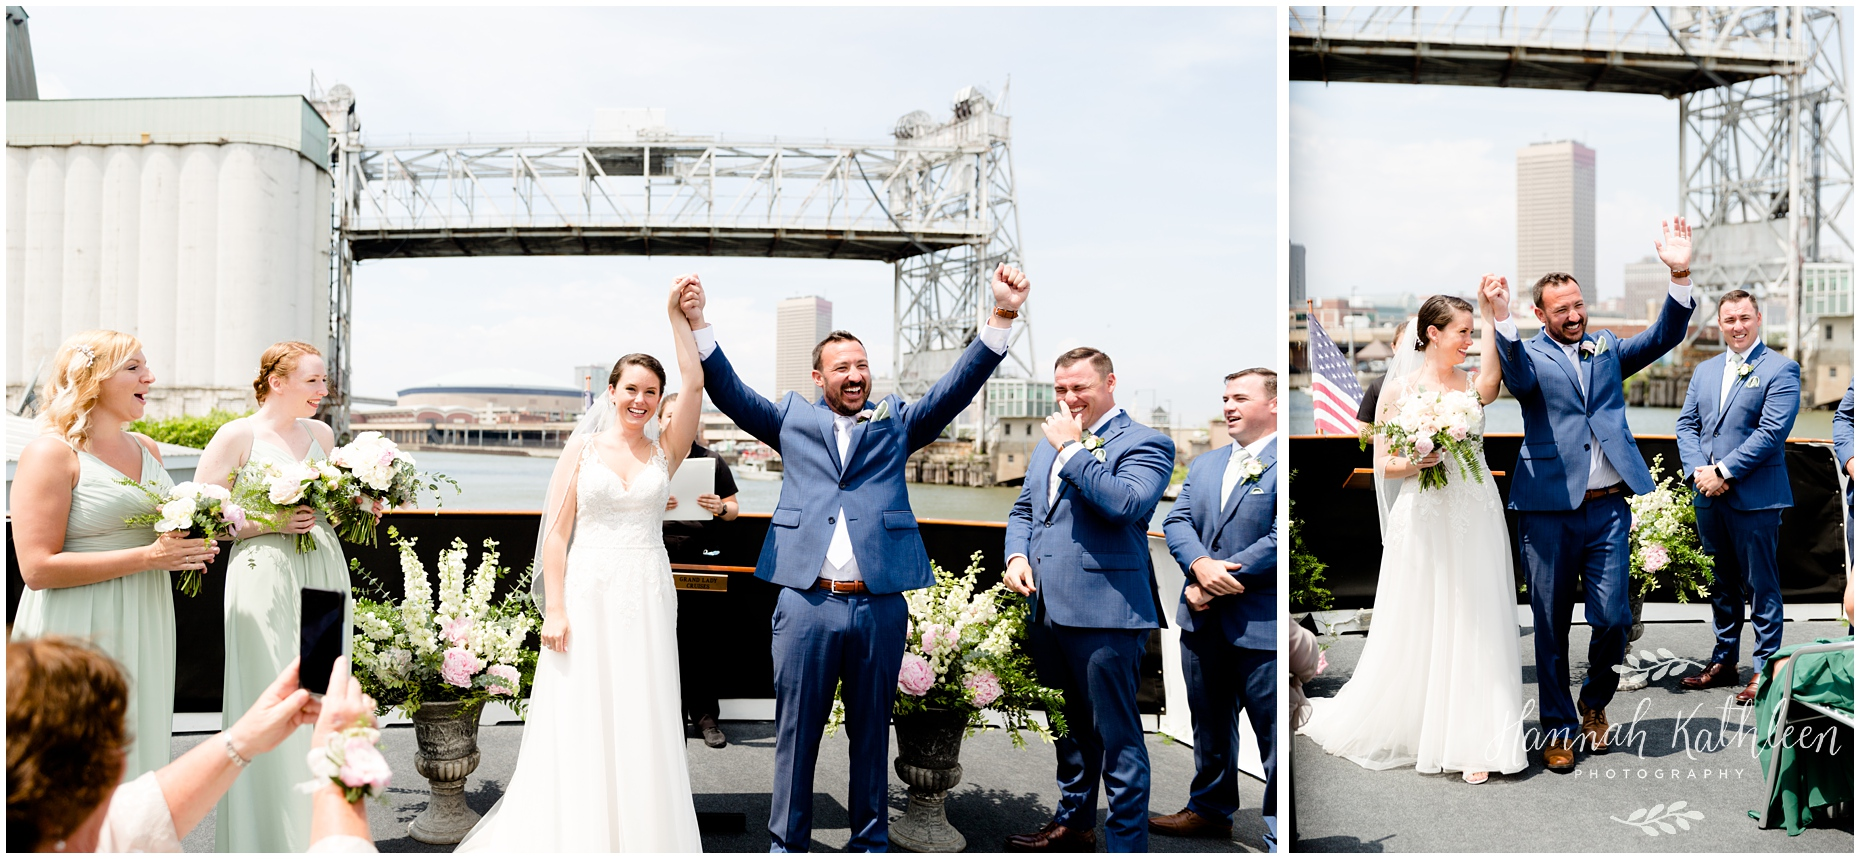 Mascia_Riverworks_Grand_Lady_Cruise_Intimate_Cobblestone_Tifft_covid_Wedding_Photography_Buffalo_New_York